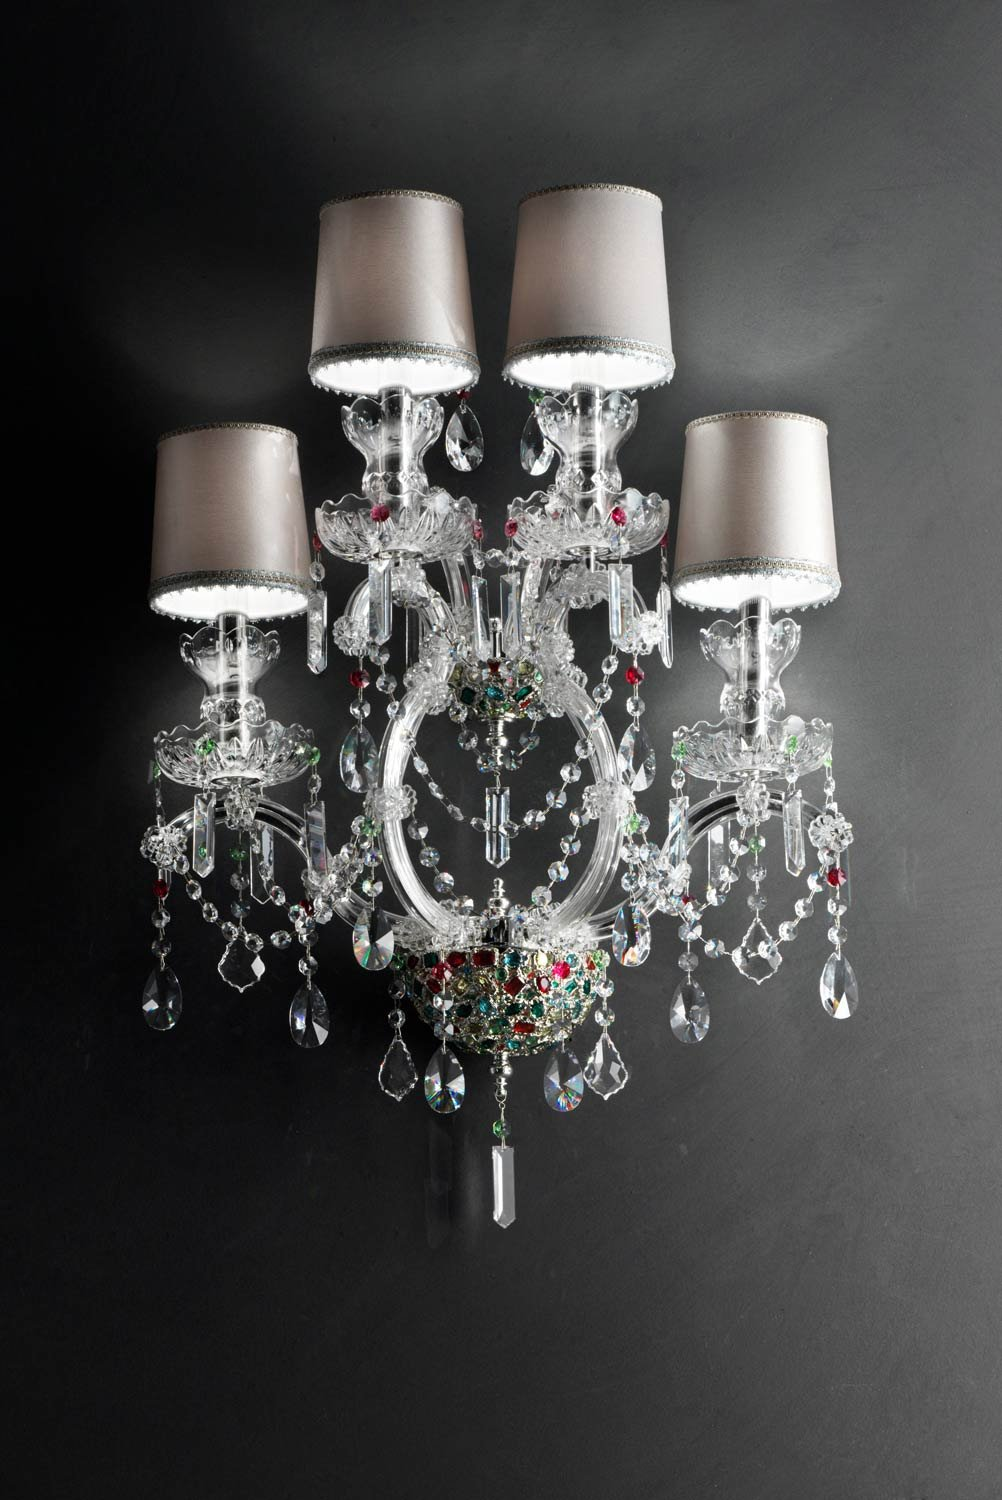 masiero aplique Aqaba Plata A Mano, Made in Italy, Made with Crystal garlands